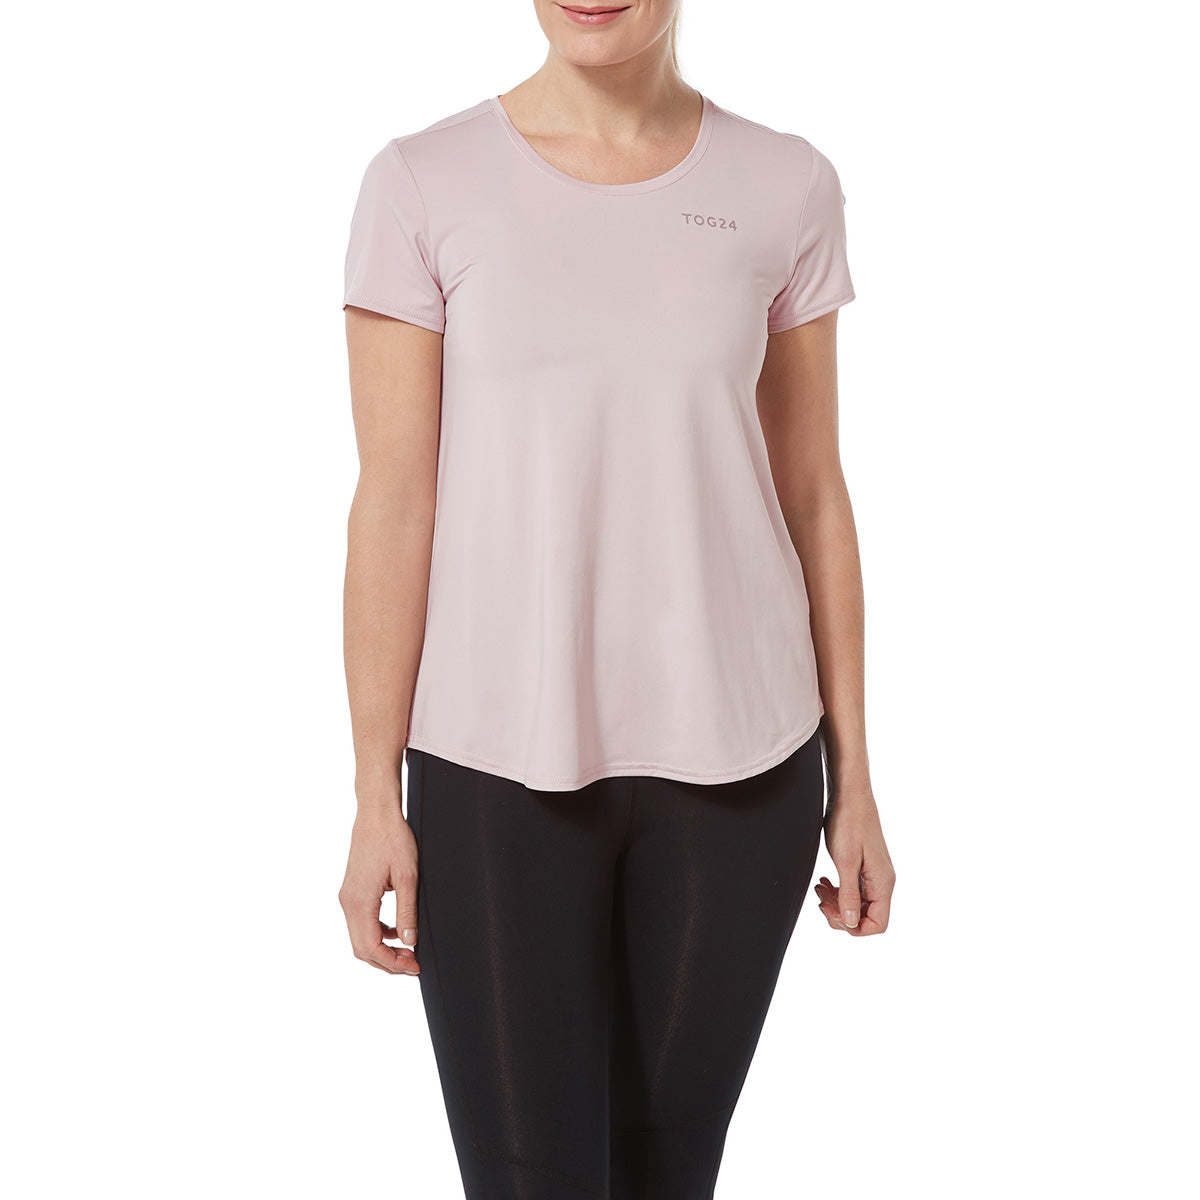 Lawson Womens Performance T-Shirt - Chalk Pink